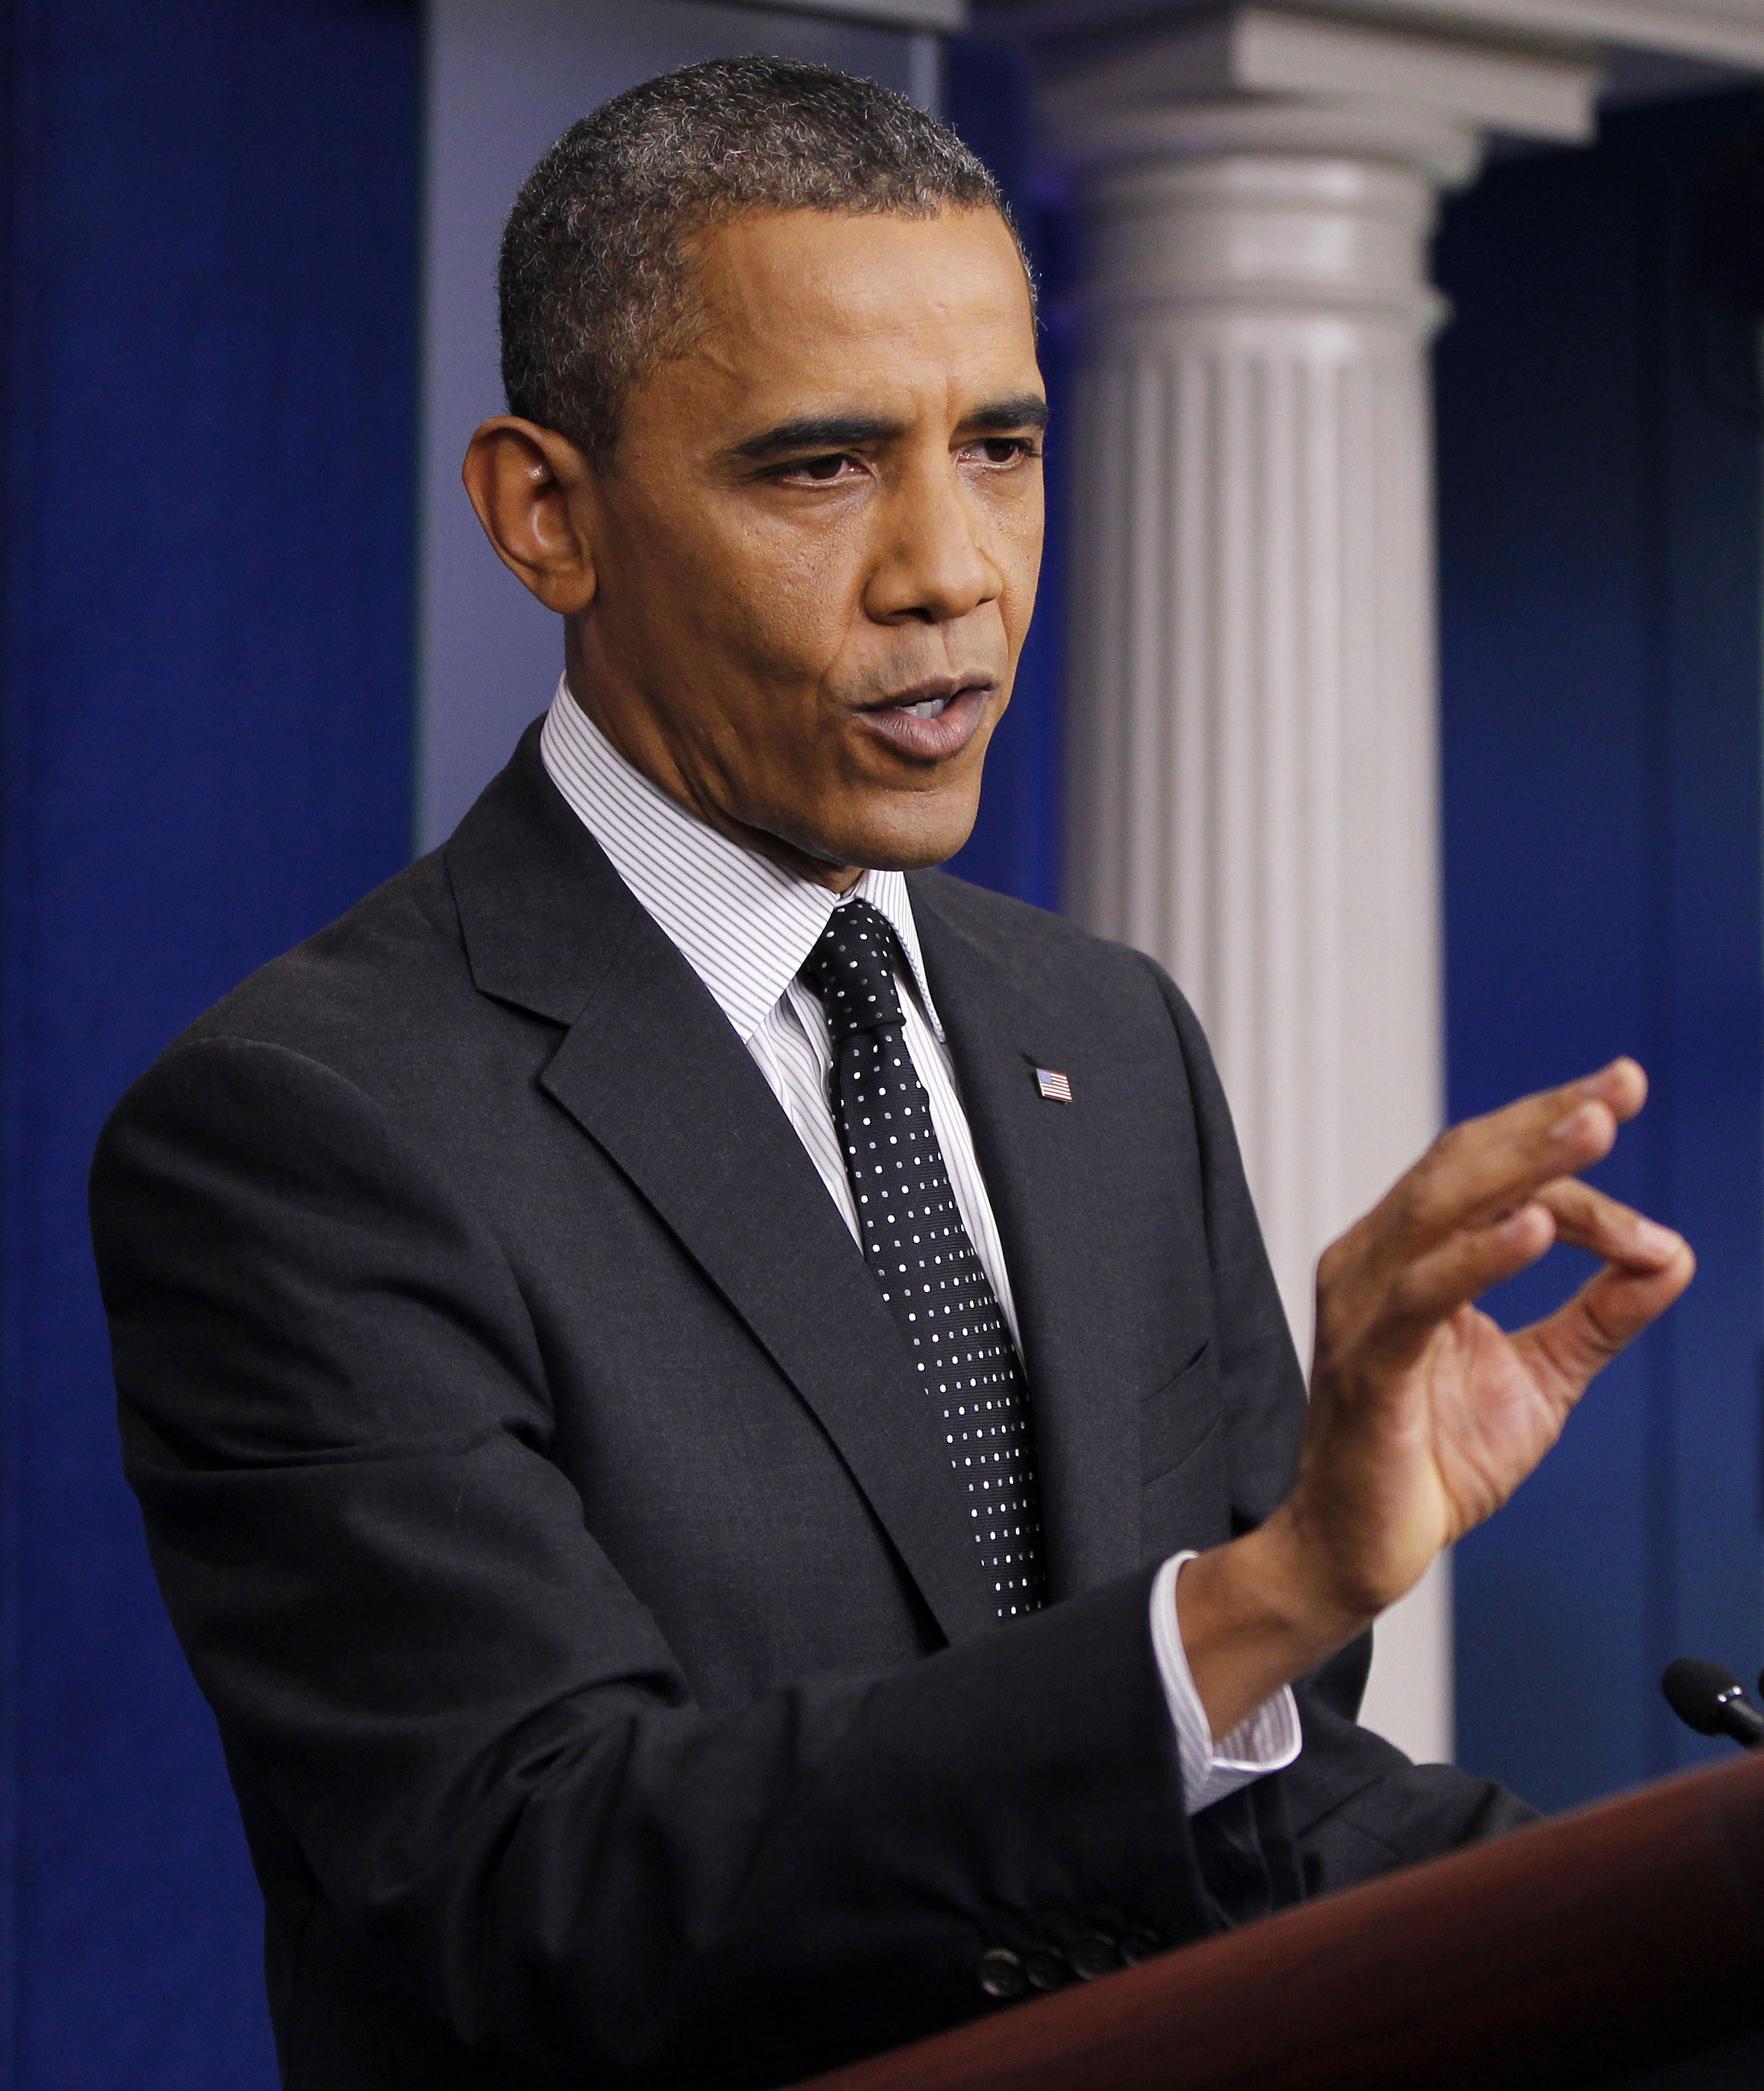 President Barack Obama gestures while speaking in the White House briefing room (Pablo Martinez Monsivais/AP)